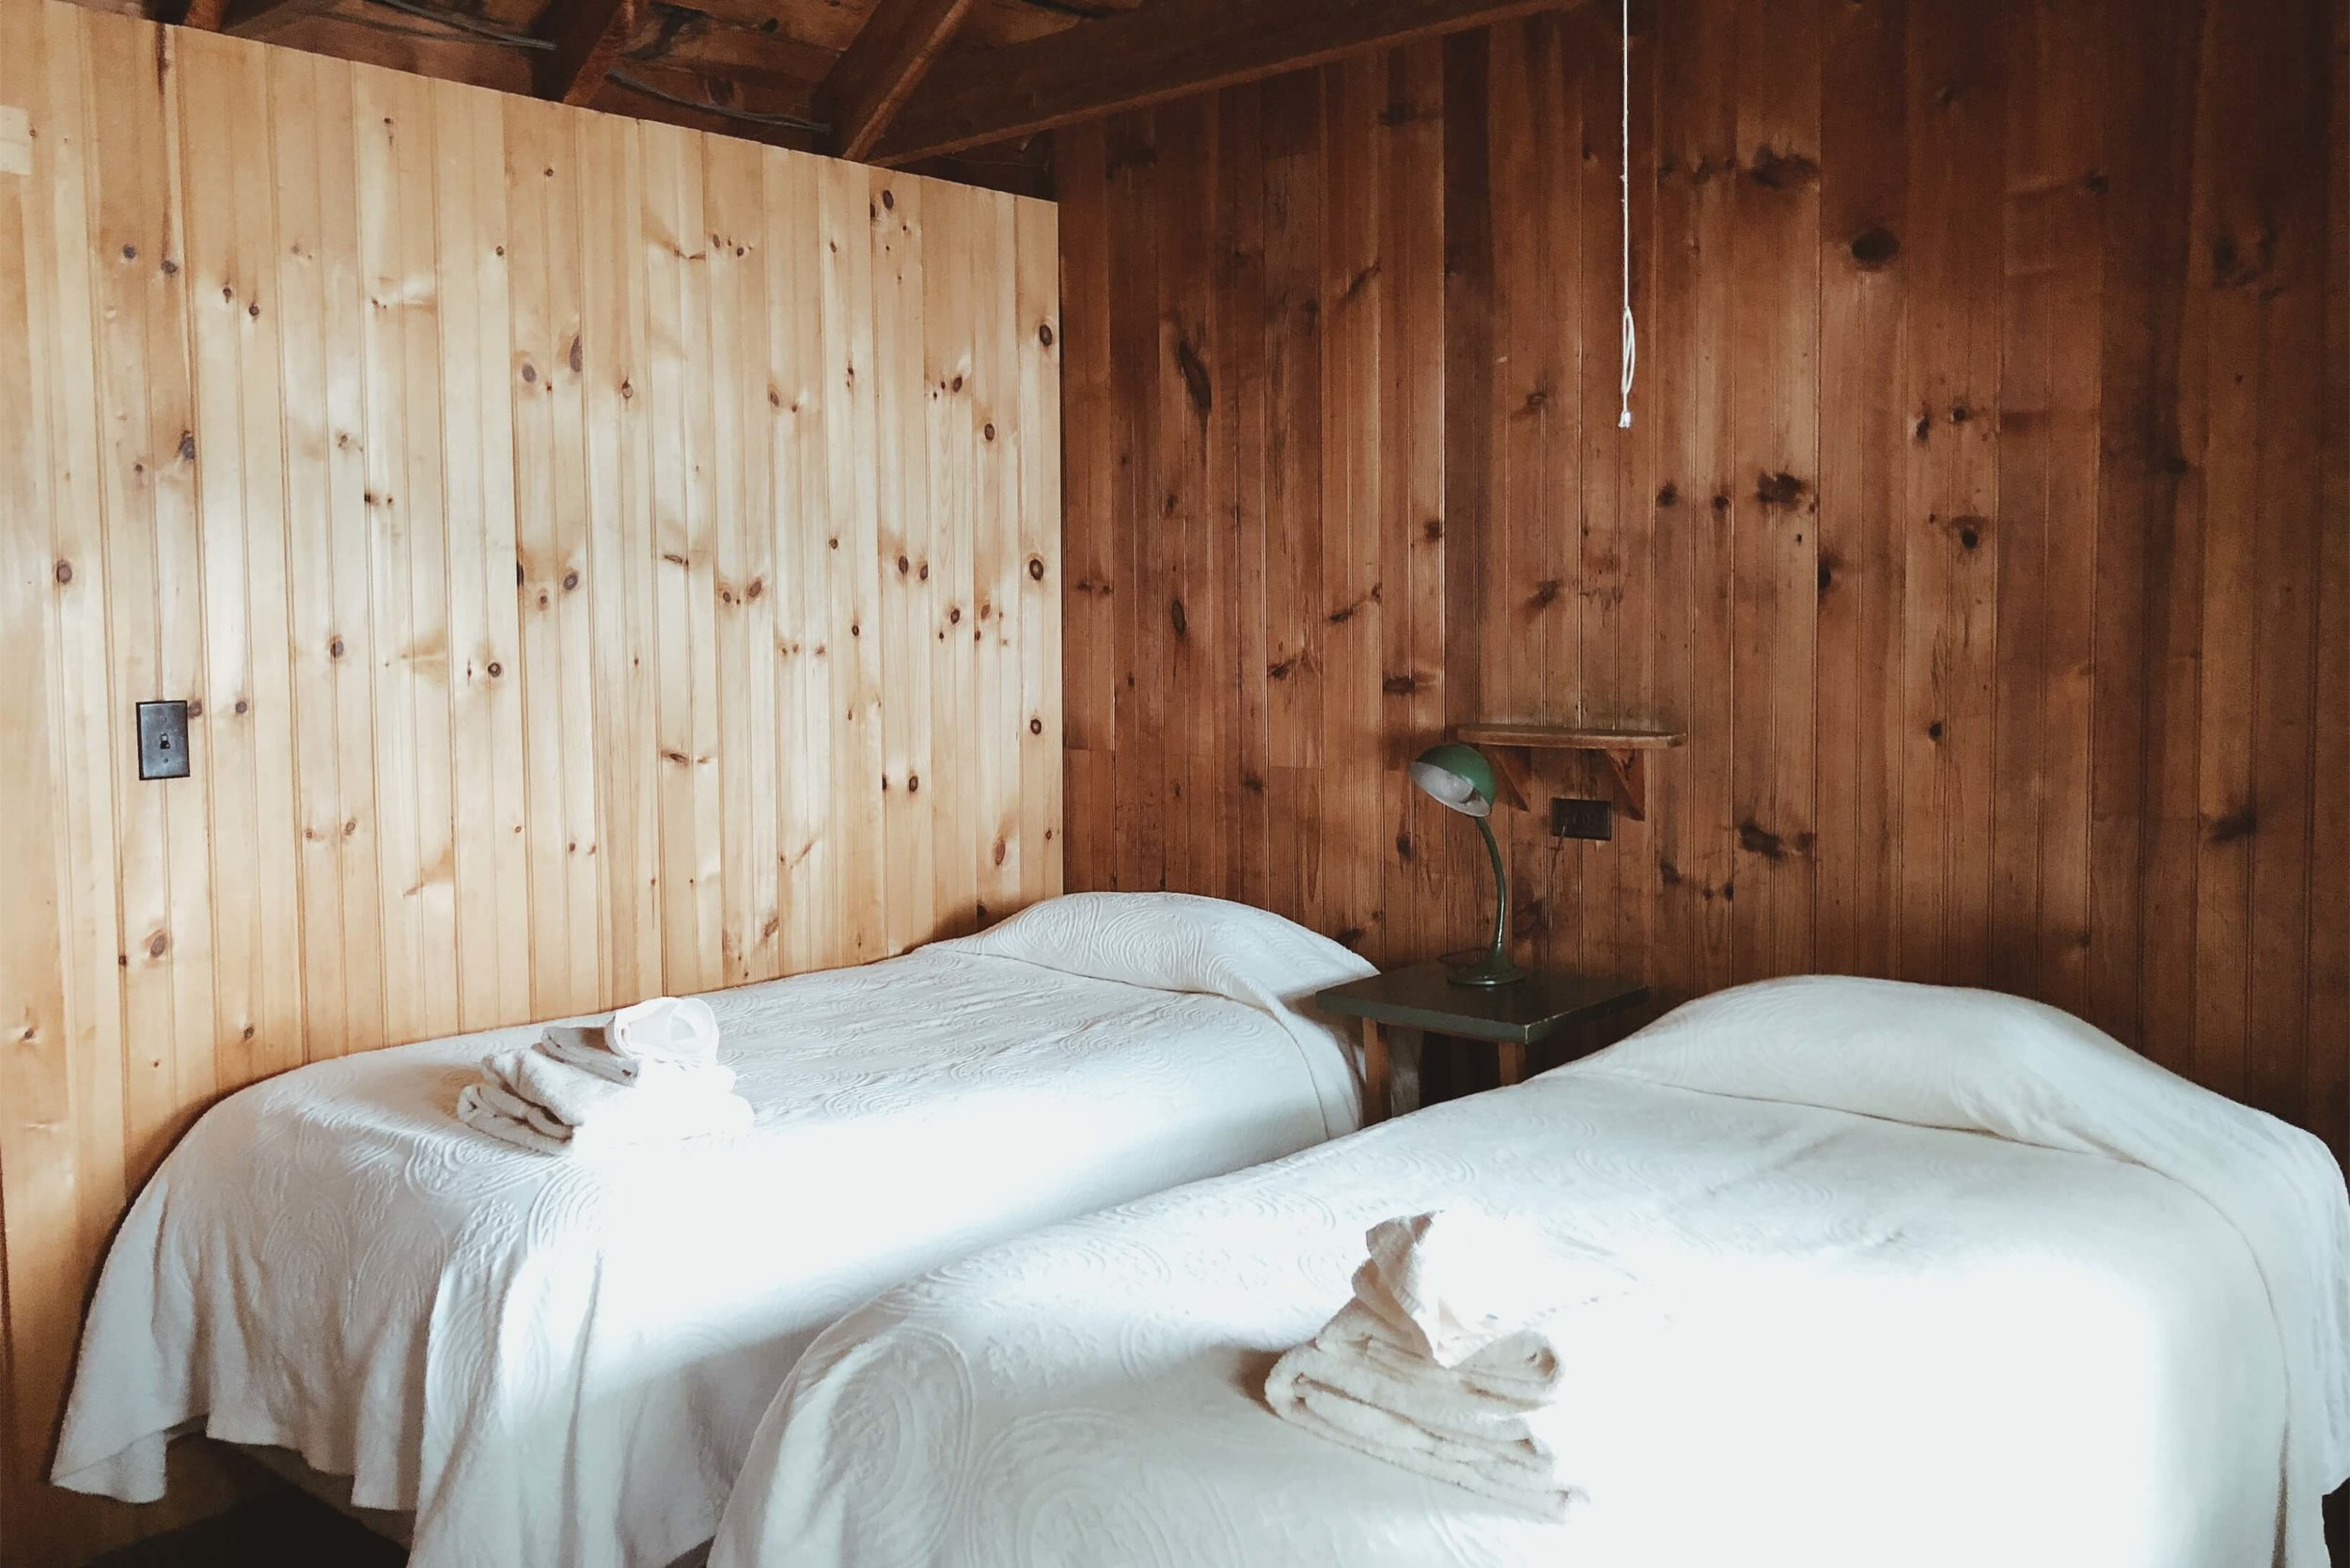 Twin beds at Ark Cabin Rockywold Squam